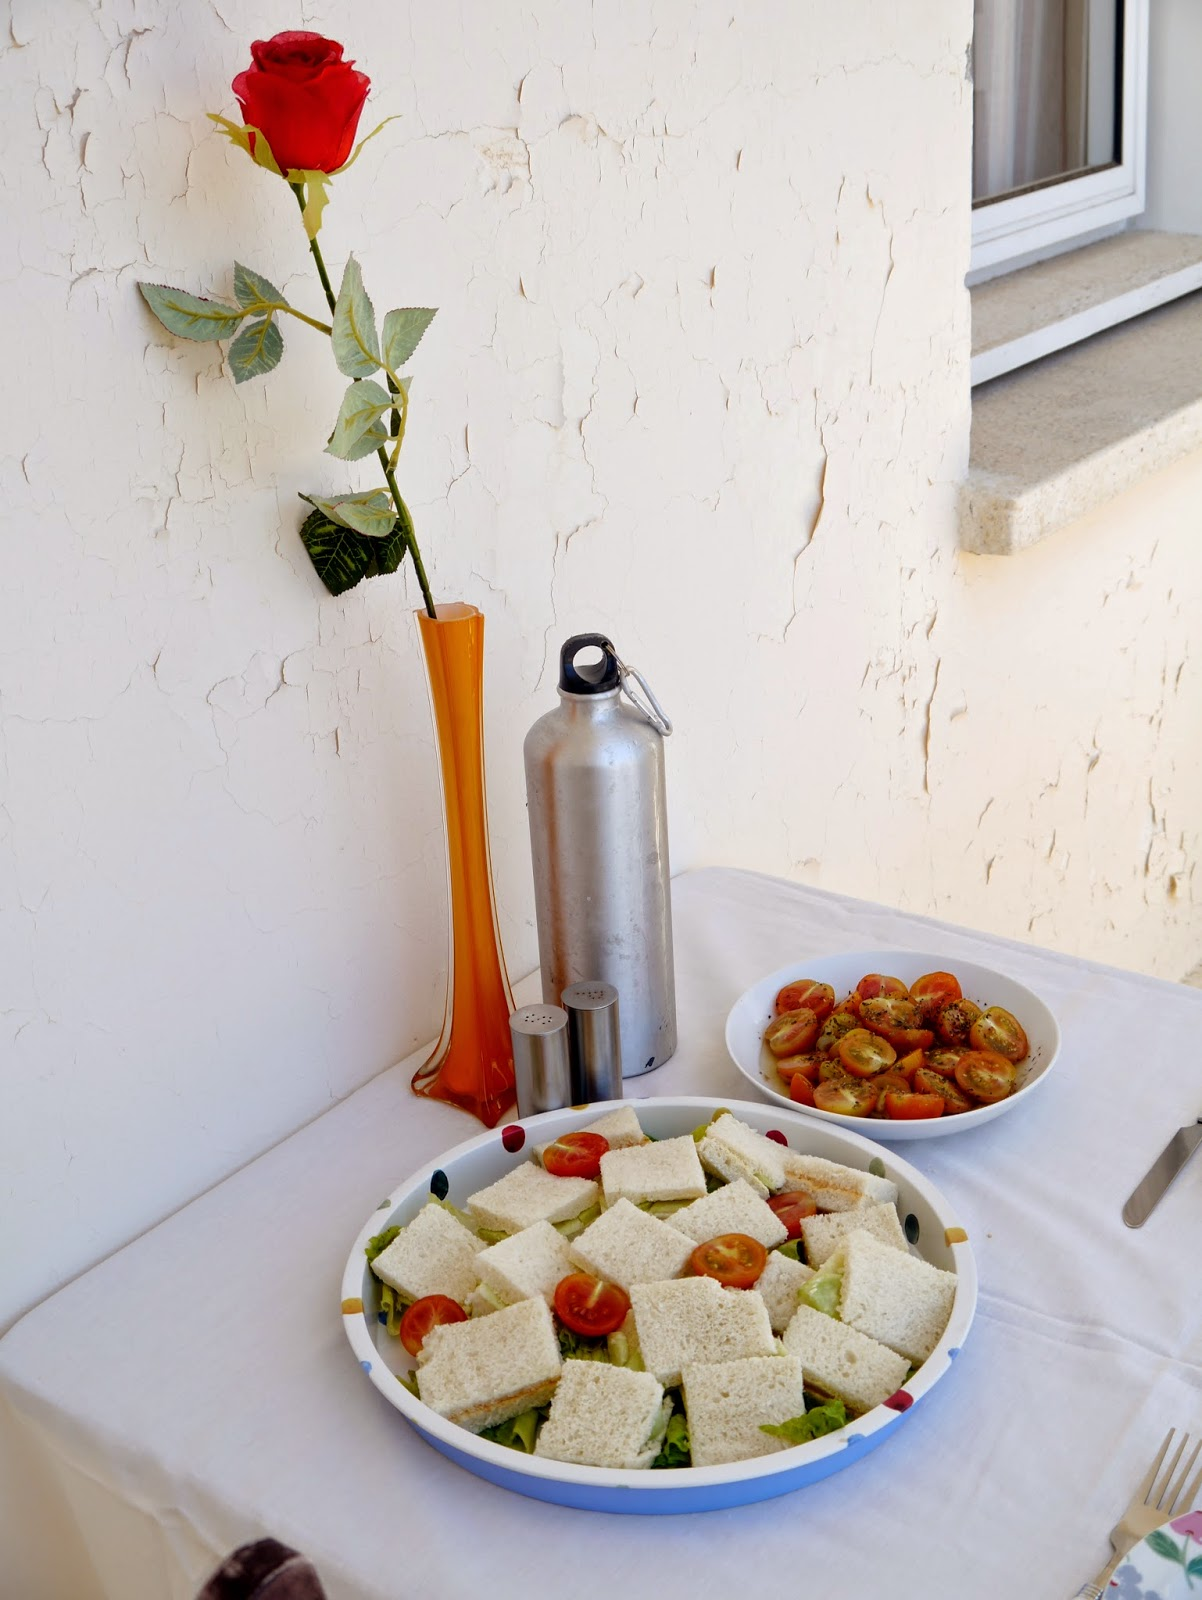 sandwiches, tomatoes and fake rose in vase